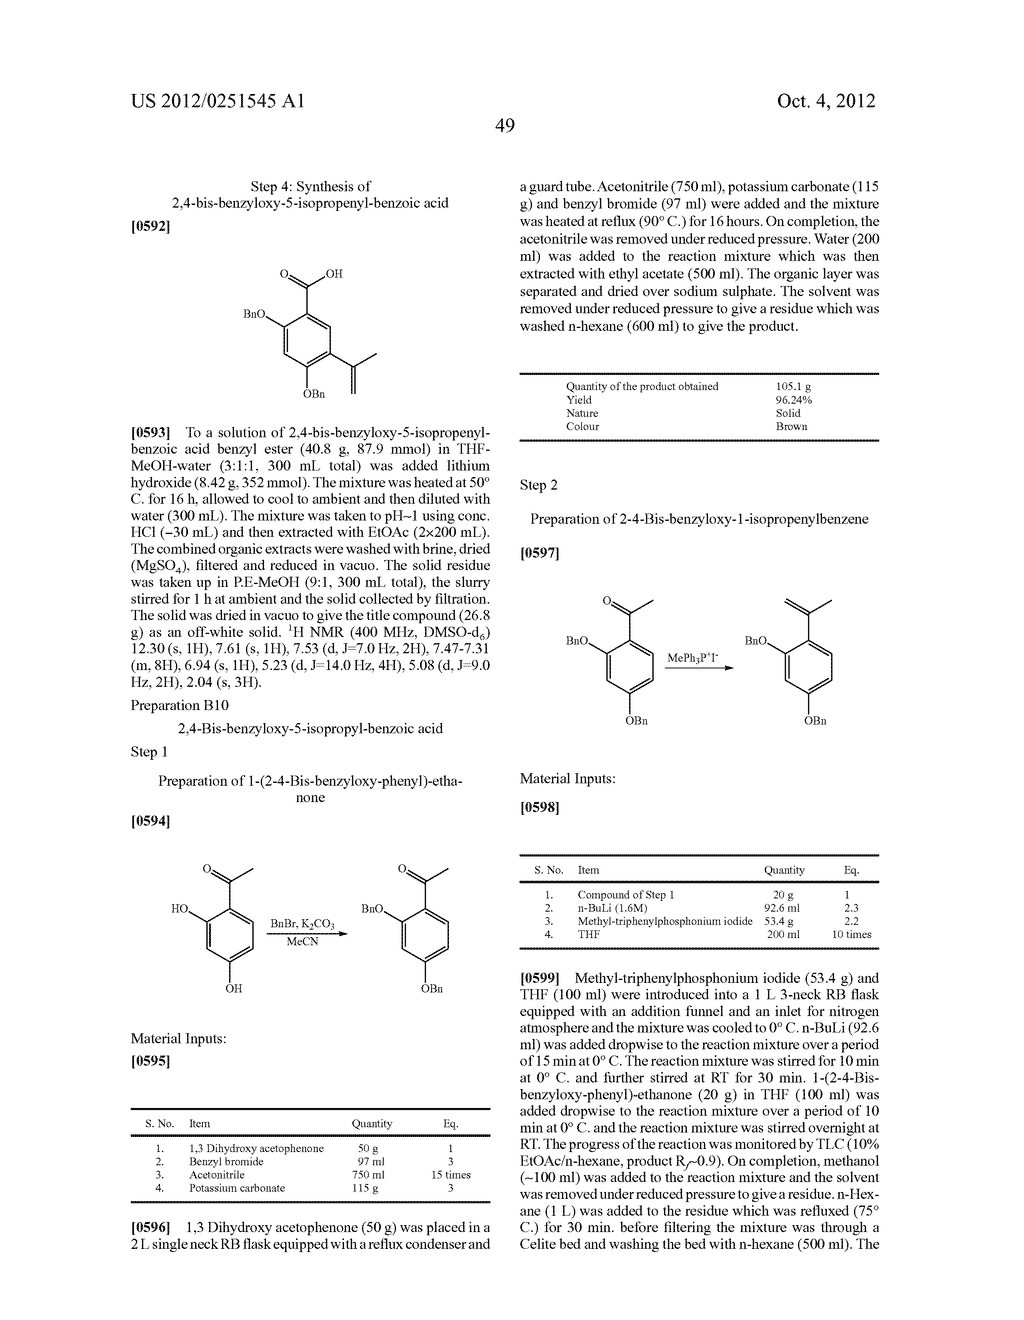 Therapeutic Combinations Of Hydroxybenzamide Derivatives As Inhibitors Of     HSP90 - diagram, schematic, and image 50